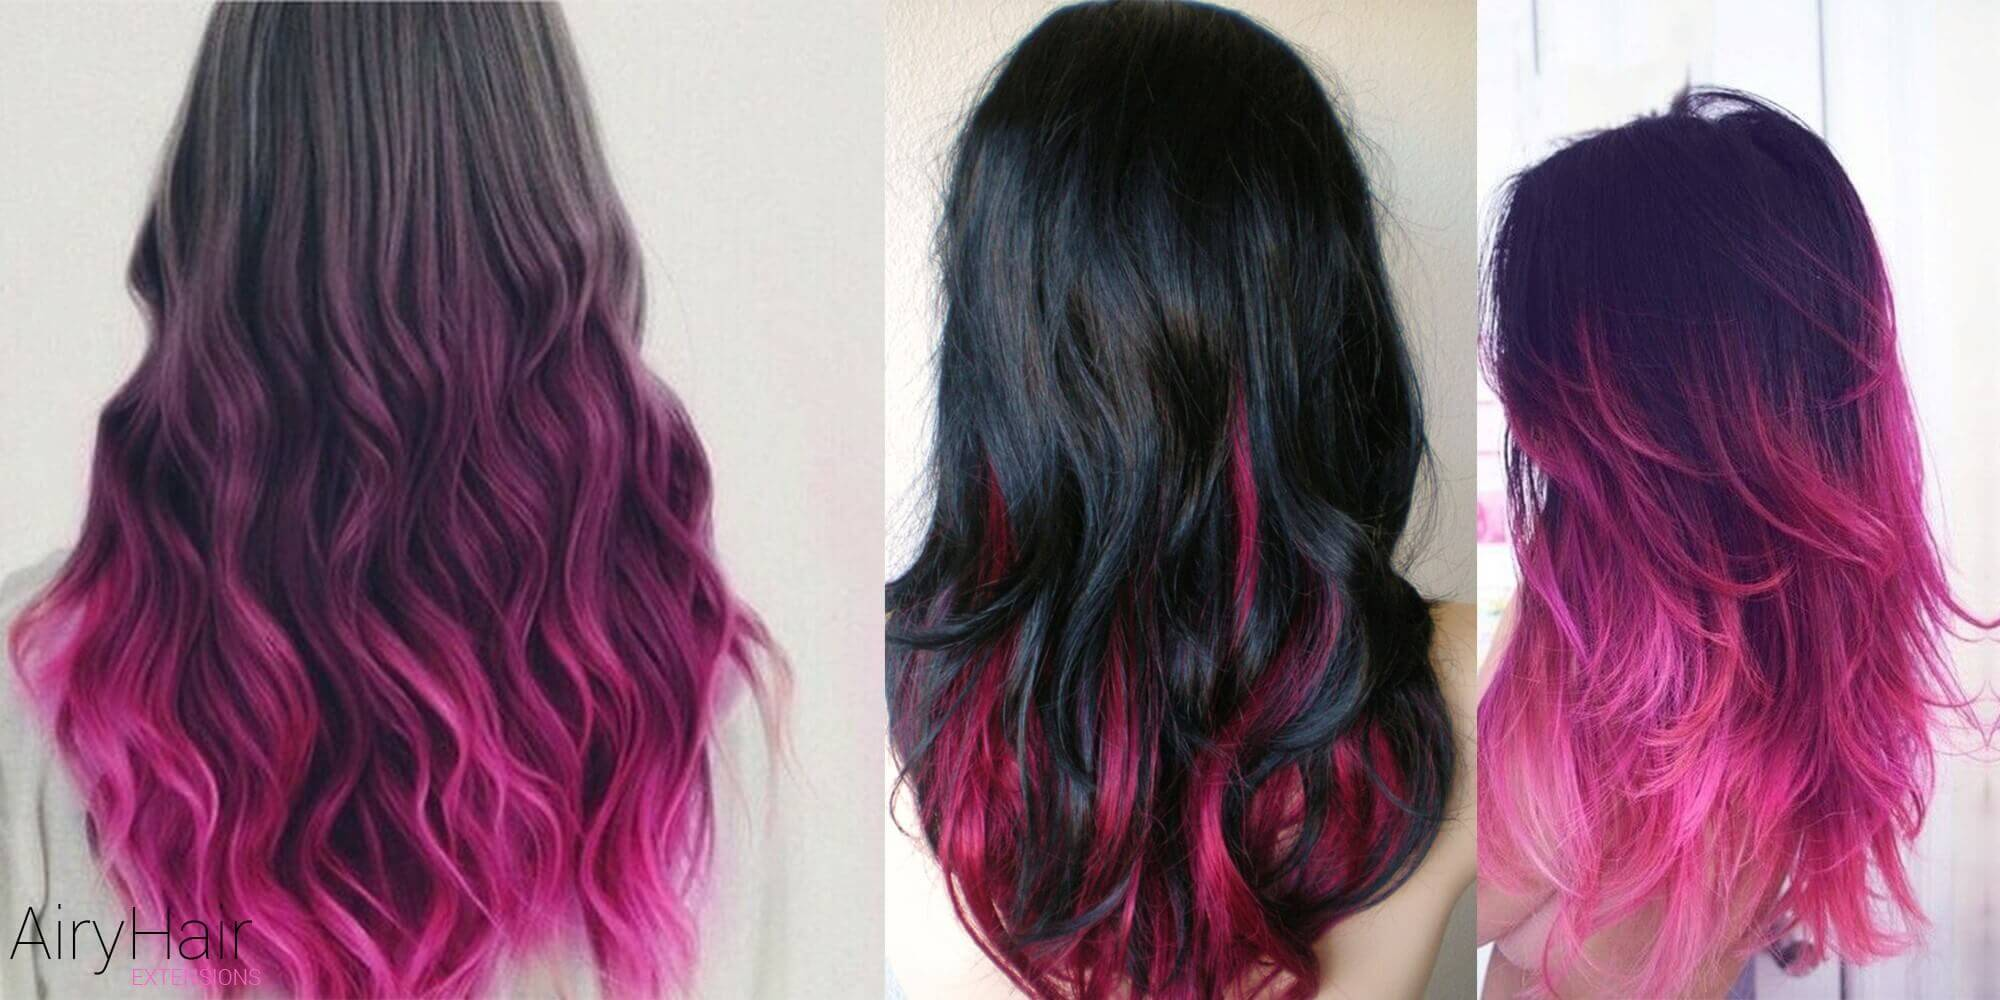 10 stunning black ombre hairstyles